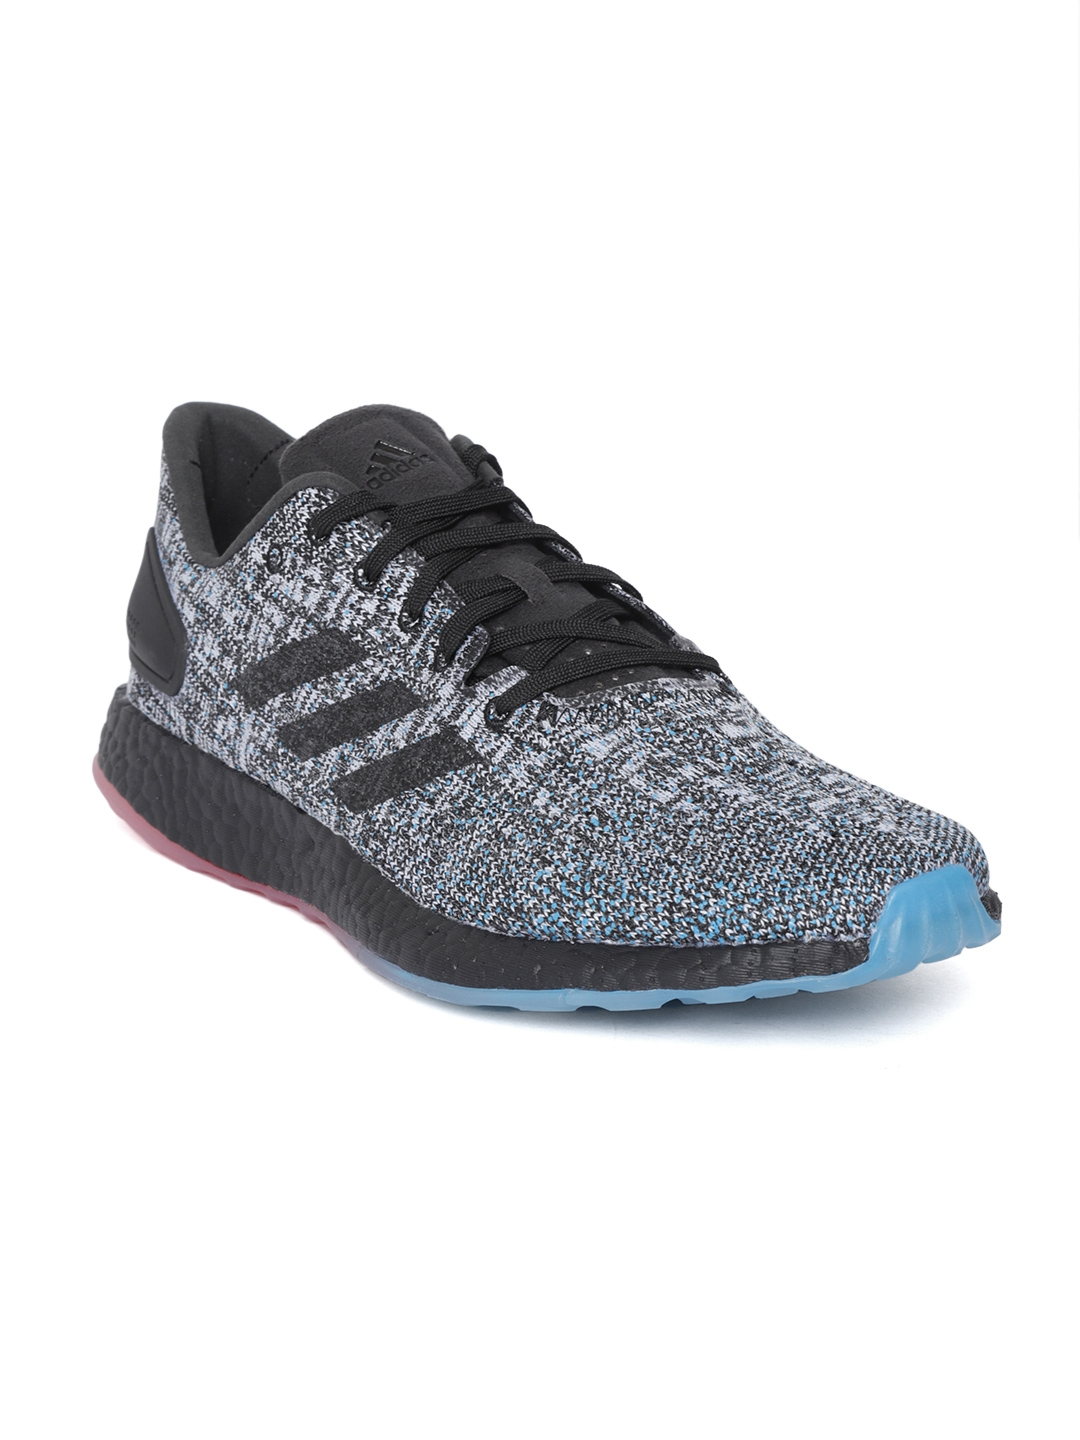 67a9d9dcbfa2f Buy ADIDAS Men Black   Grey Pureboost DPR LTD Running Shoes - Sports ...